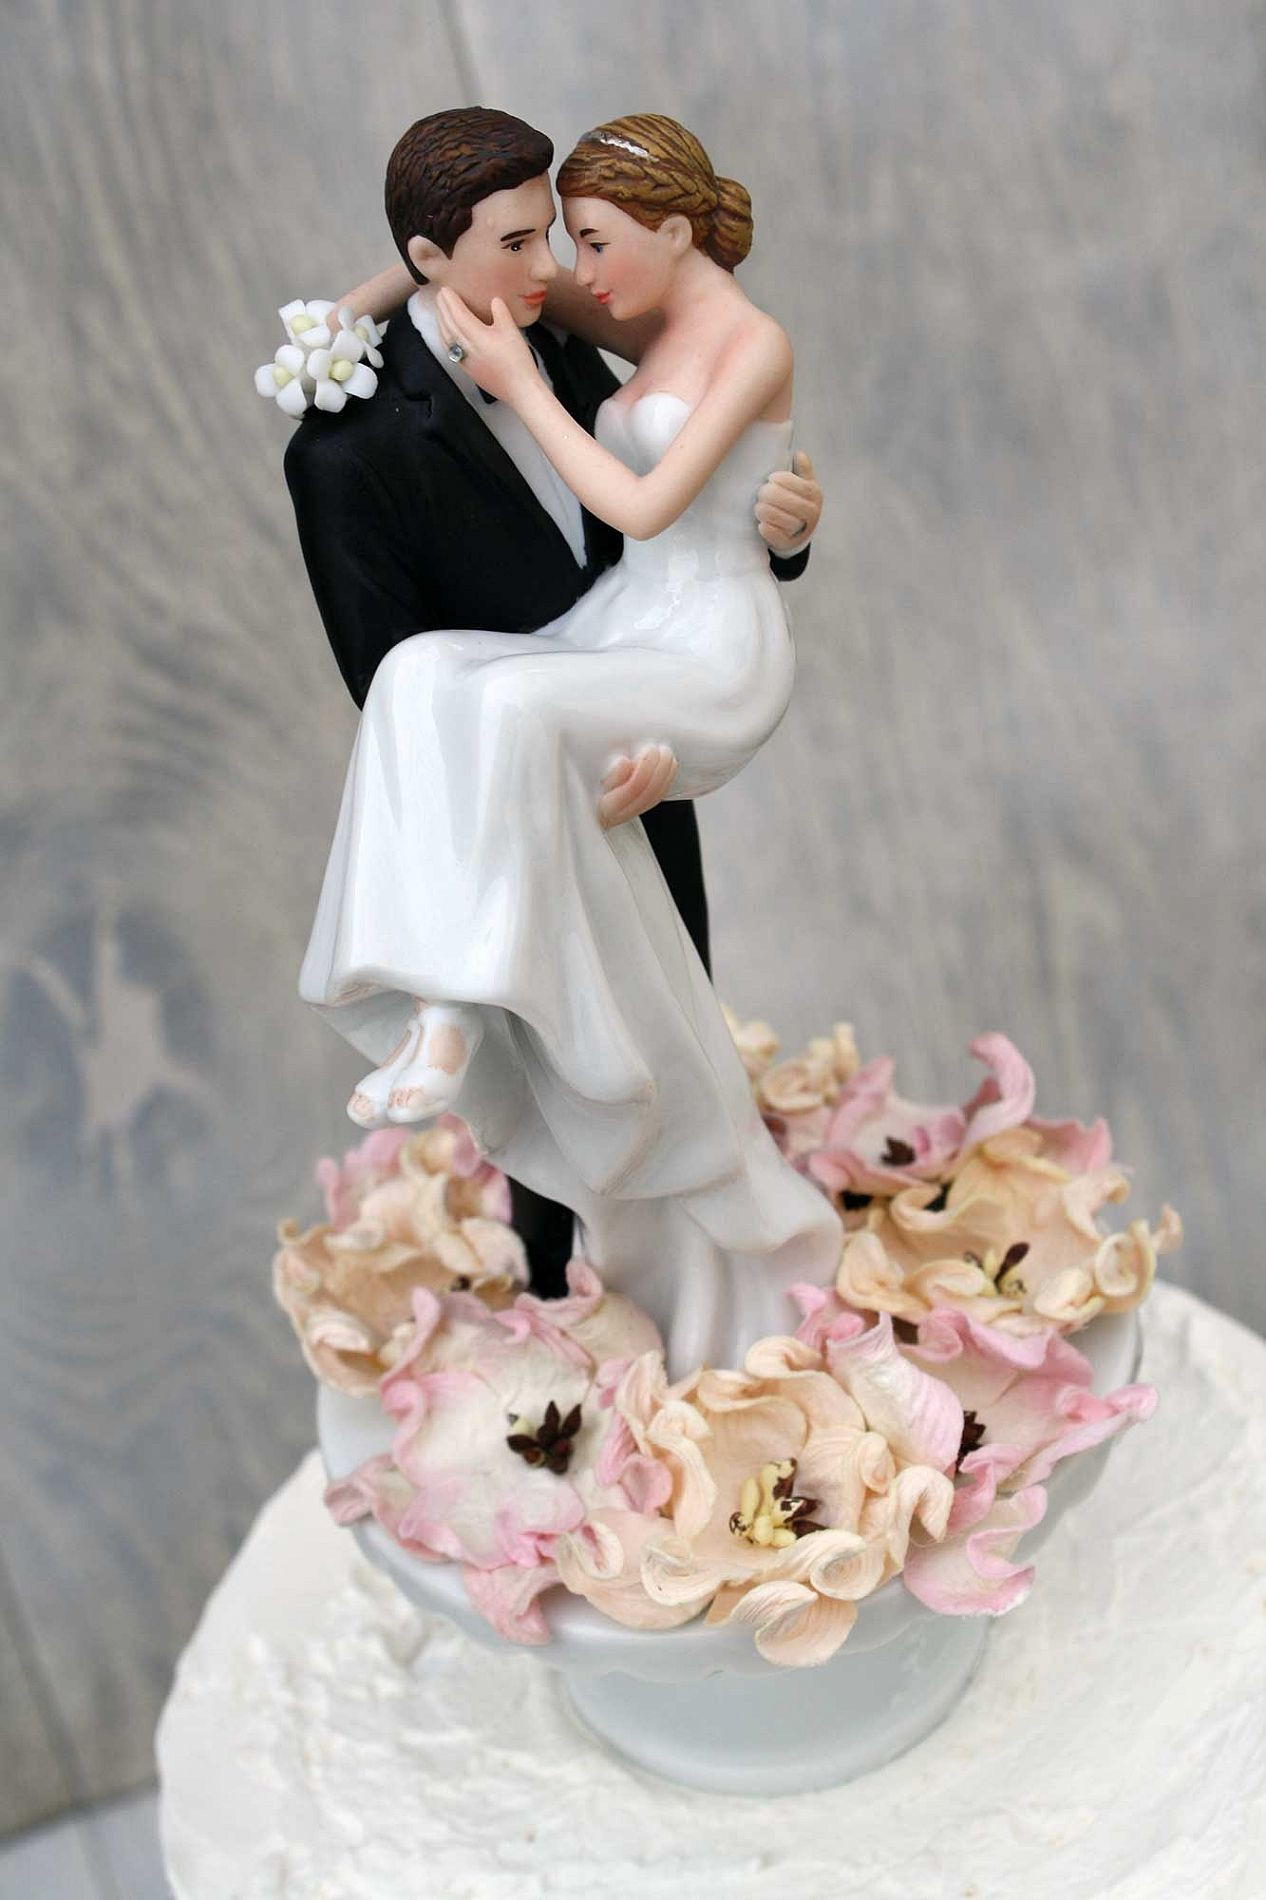 Bride And Groom Toppers For Wedding Cakes  Bed of Roses Groom Holding the Bride Wedding Cake Topper